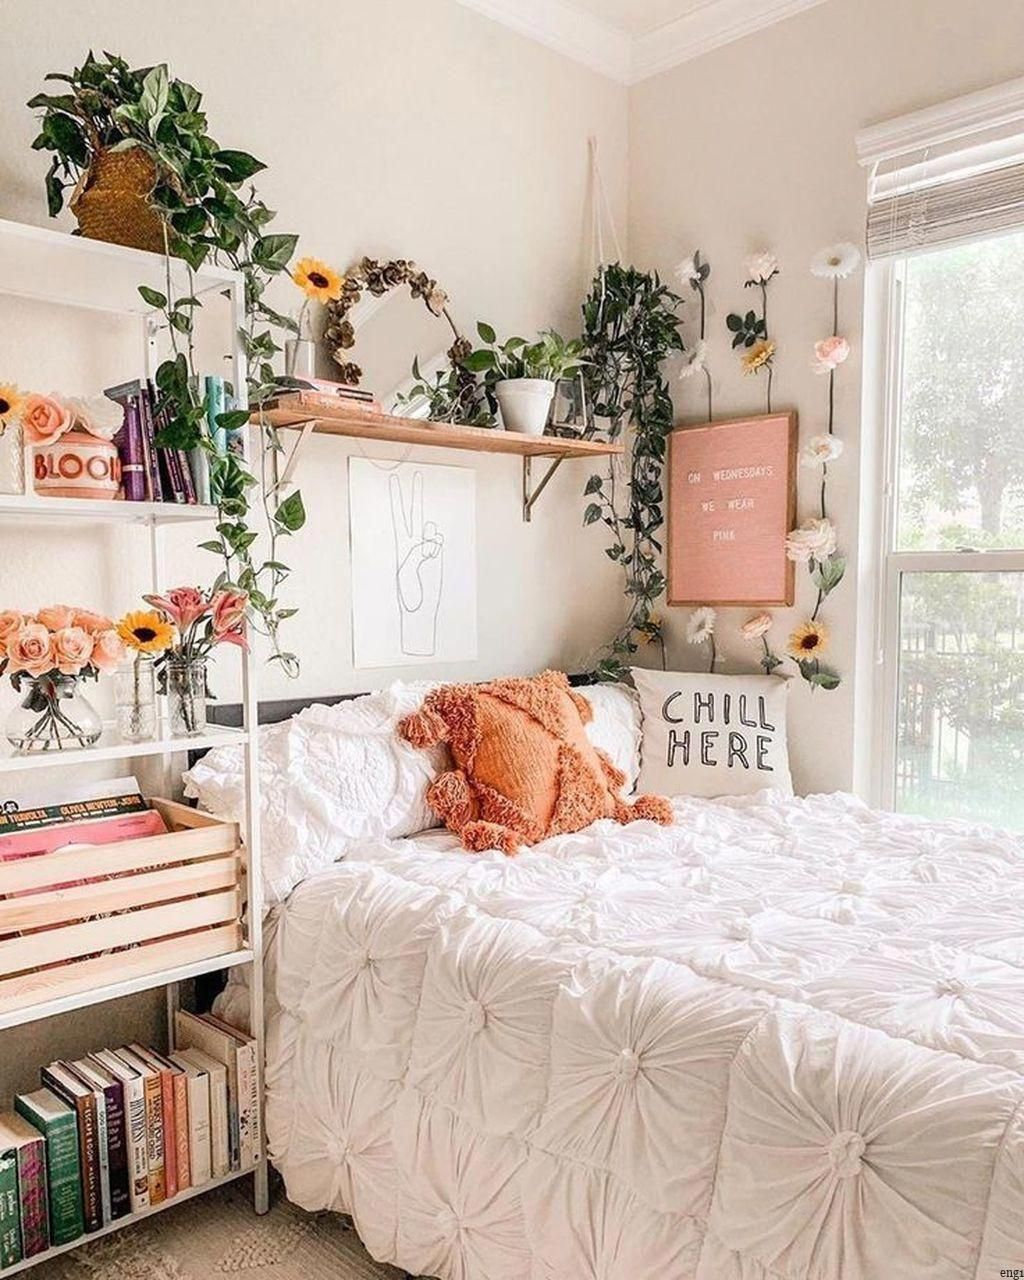 Small Dorm Room Ideas: Pin By Sam Wate On Cute Rooms In 2020